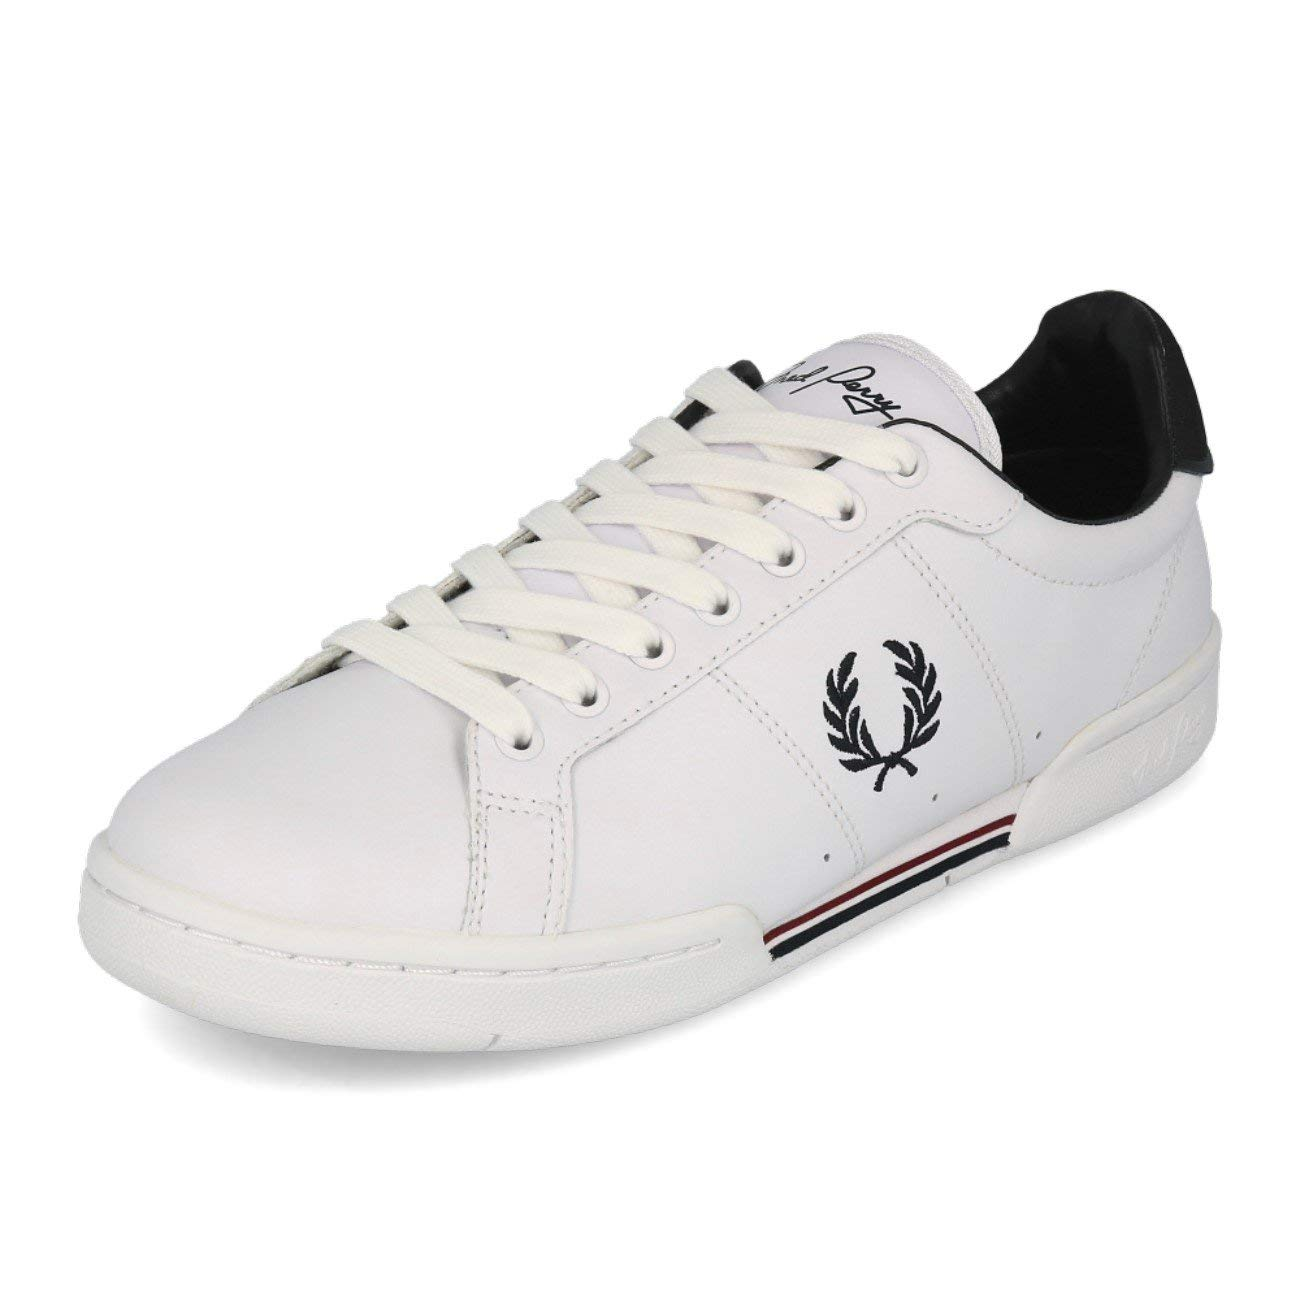 - Fred Perry Men's shoes Leather Trainers Sneakers B7222 White